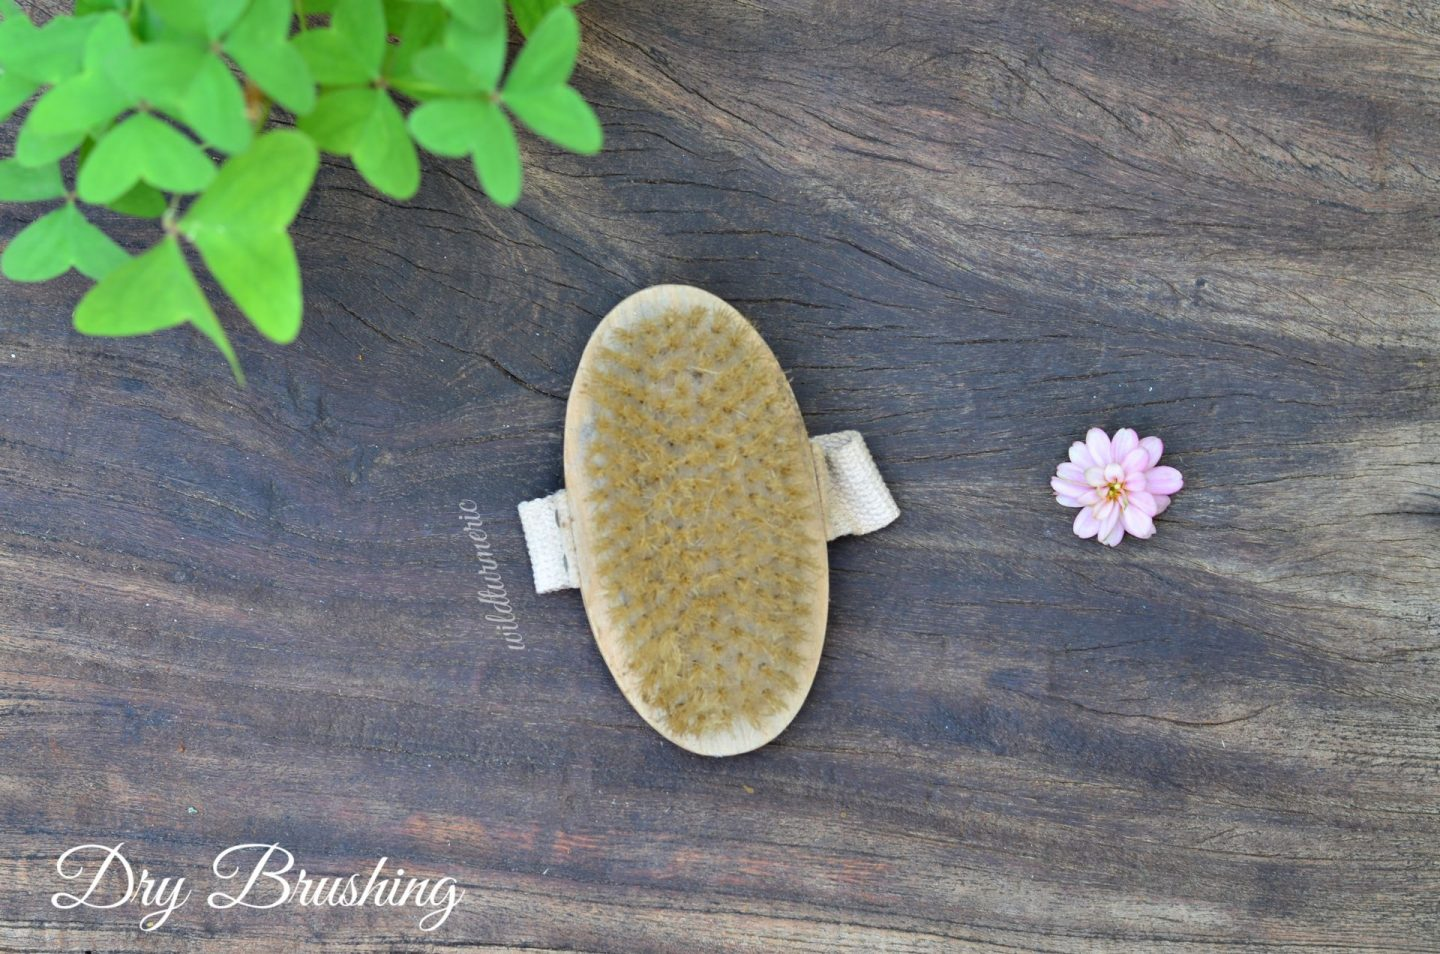 dry brushing skin benefits